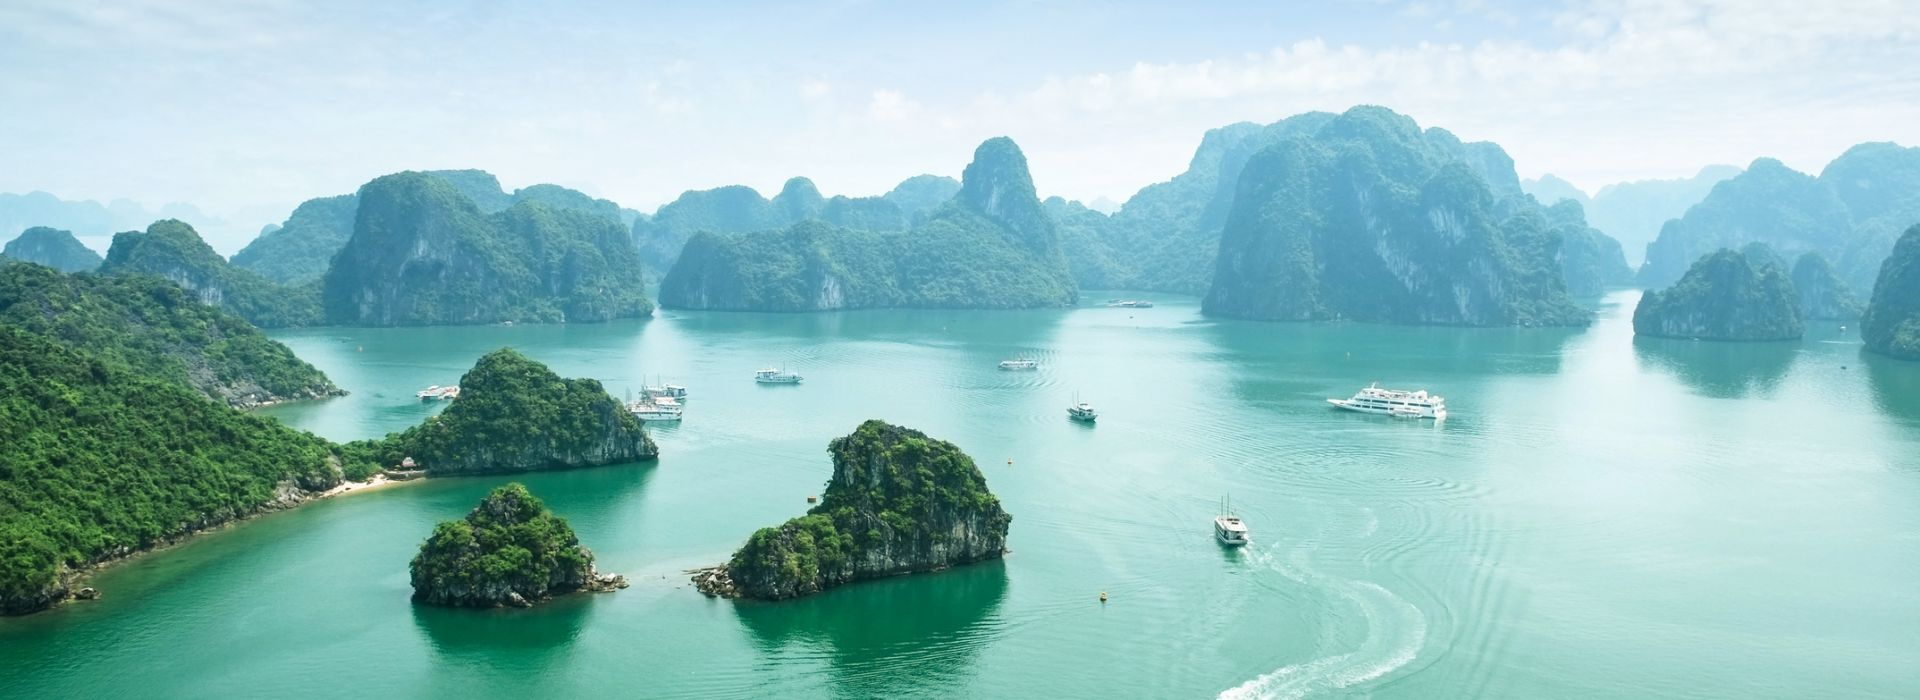 Countryside and village visits Tours in Halong Bay